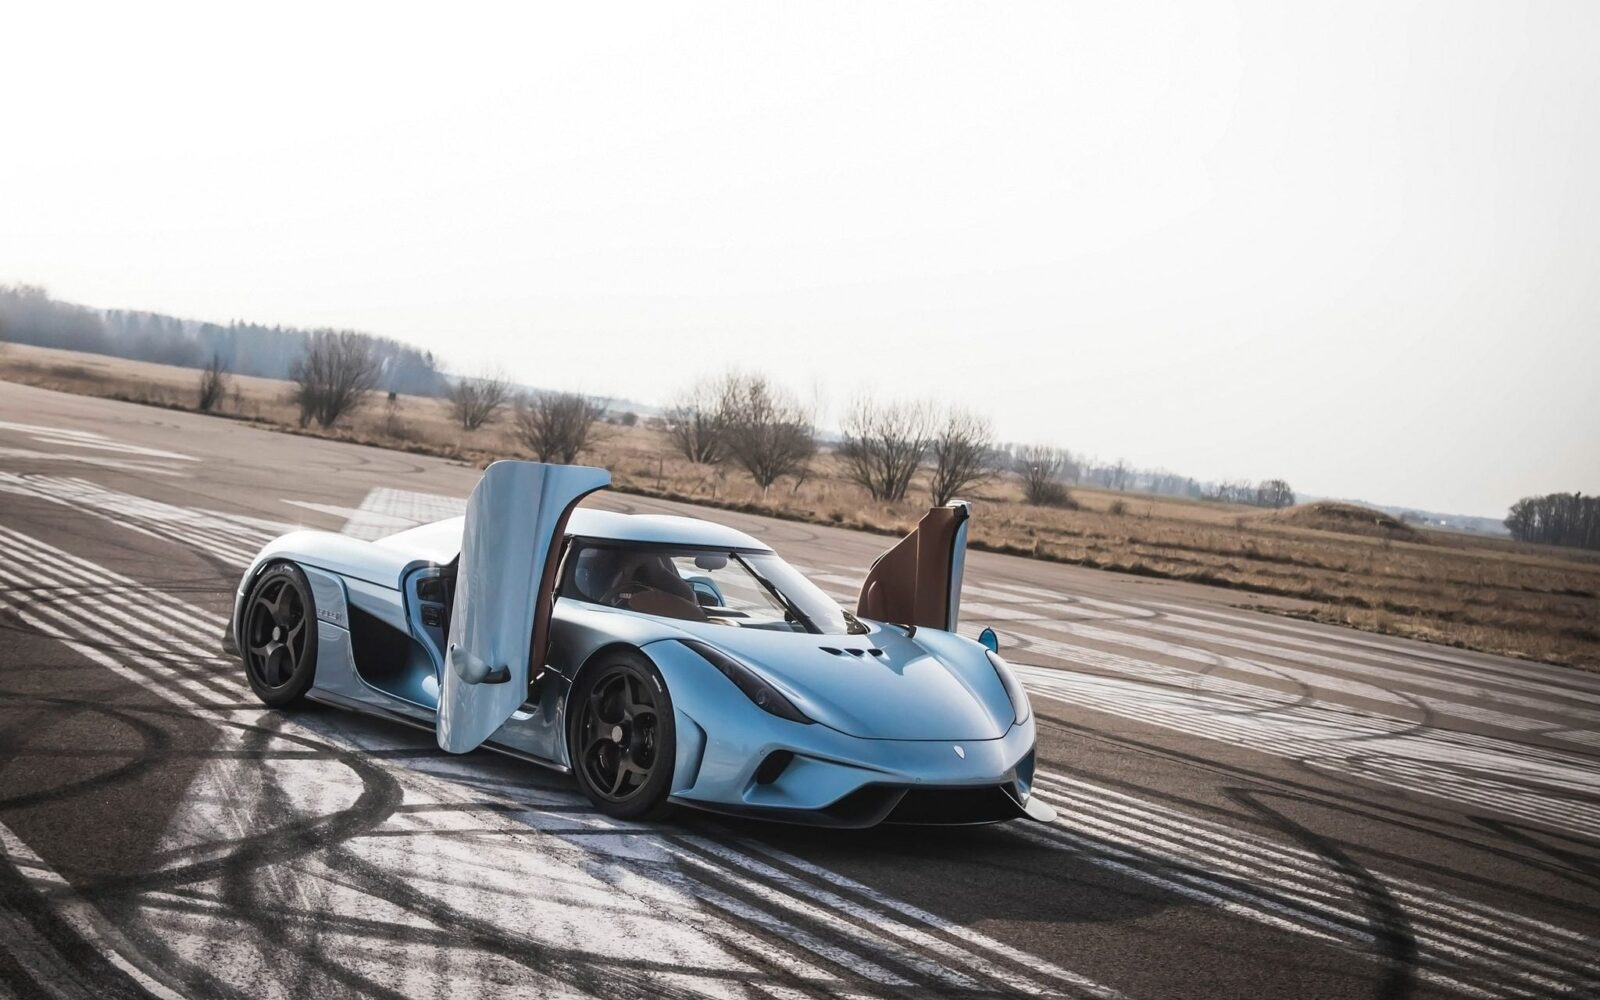 Hd Jaguar Car Wallpaper Download 2016 Koenigsegg Regera Hd Wallpapers